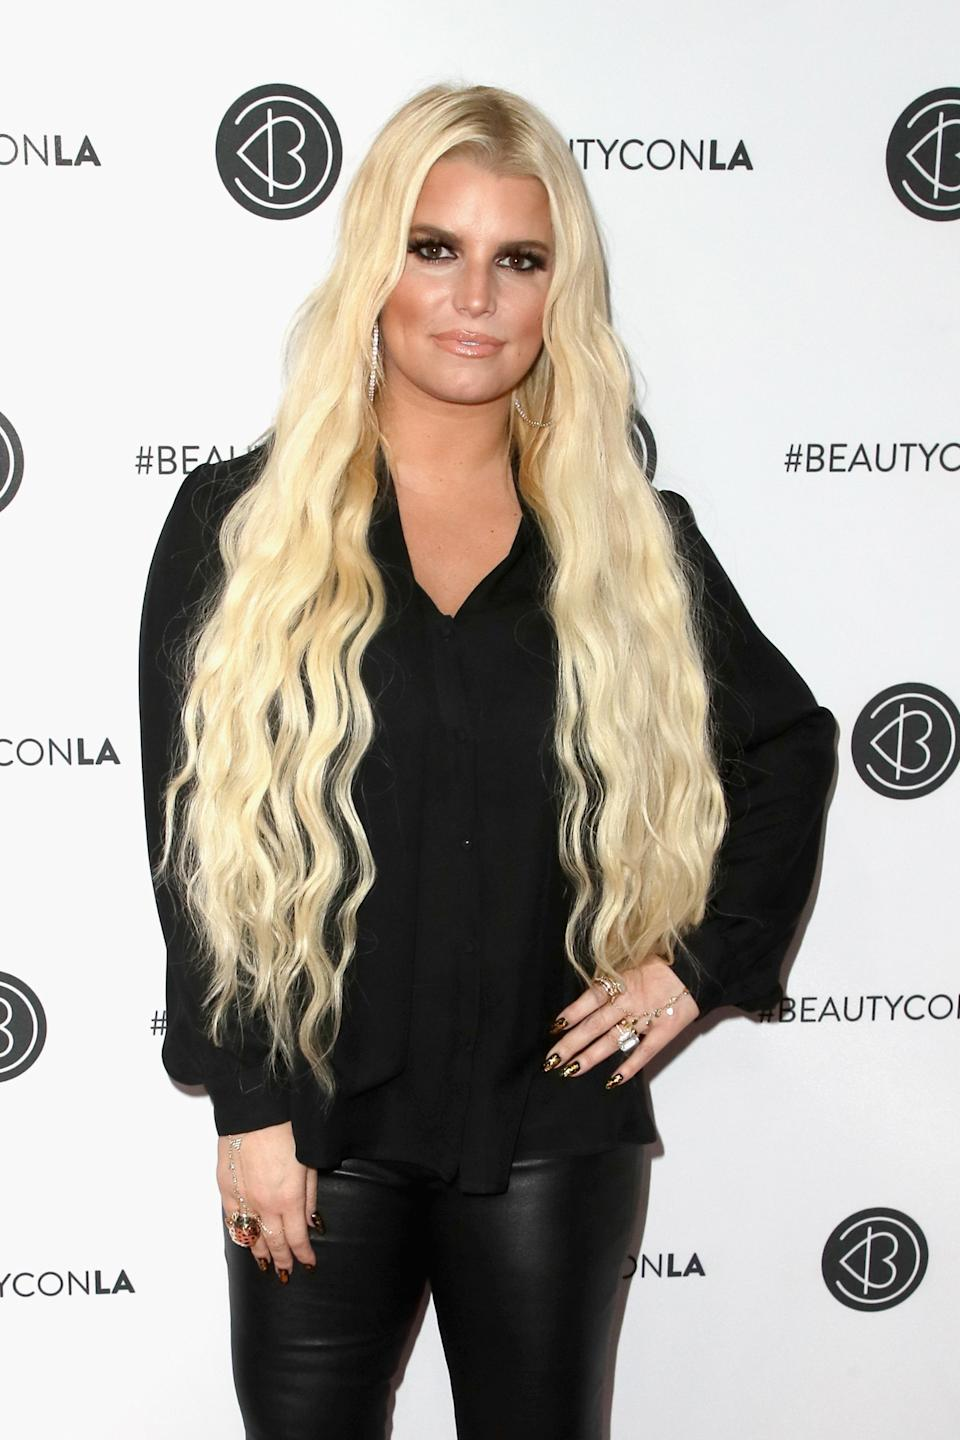 Jessica Simpson attends the Beautycon Festival LA 2018 at the Los Angeles Convention Center on July 14, 2018 in Los Angeles, California.